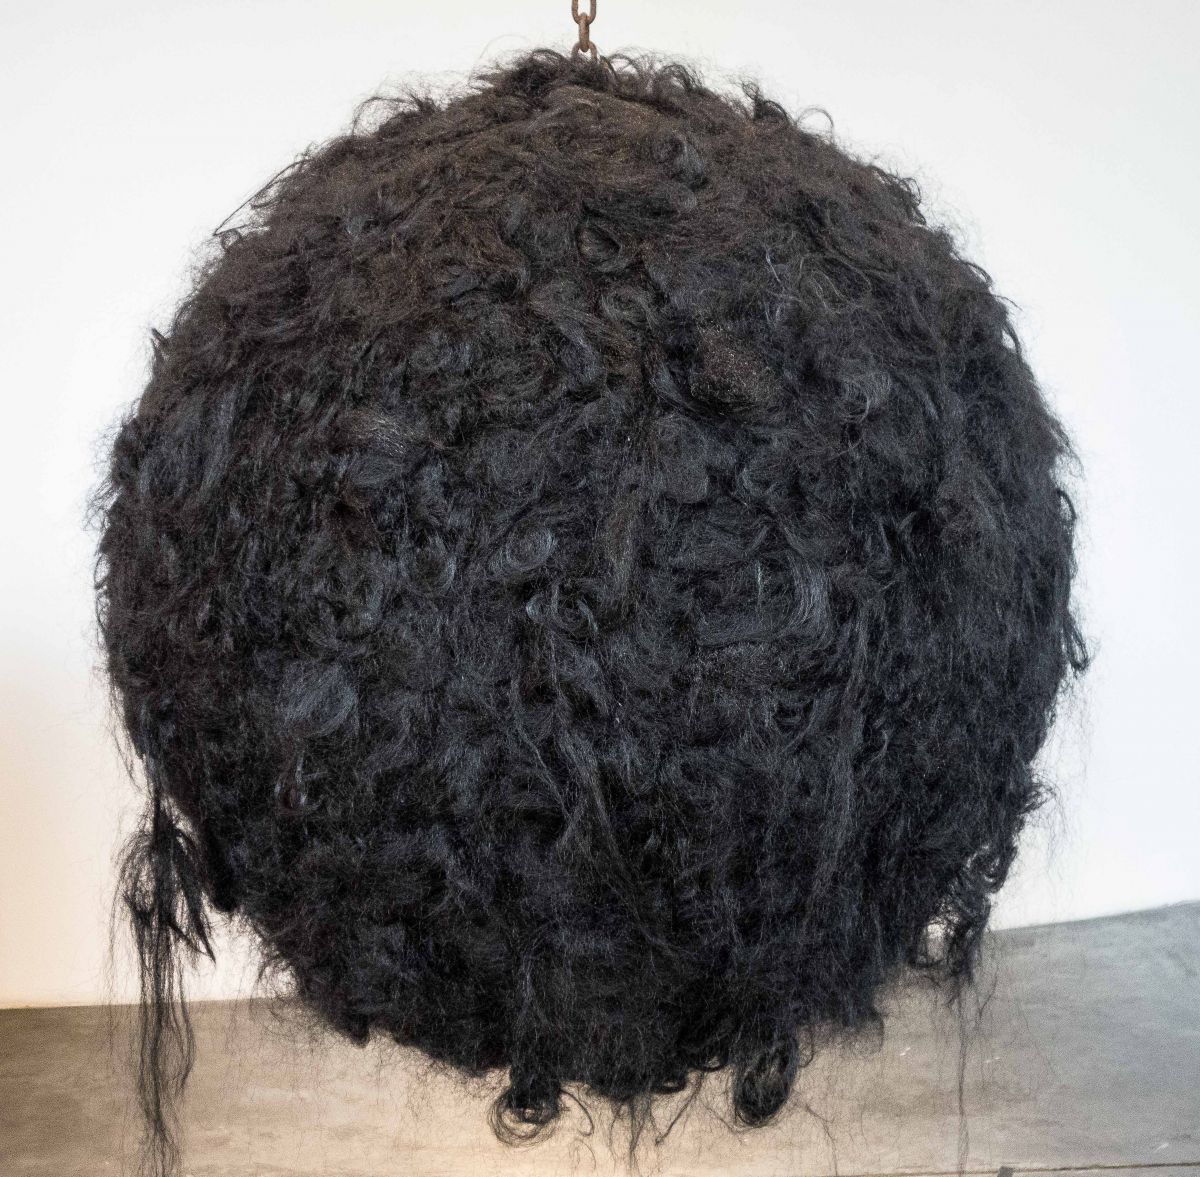 A synthetic hair ball by artist Castillo.